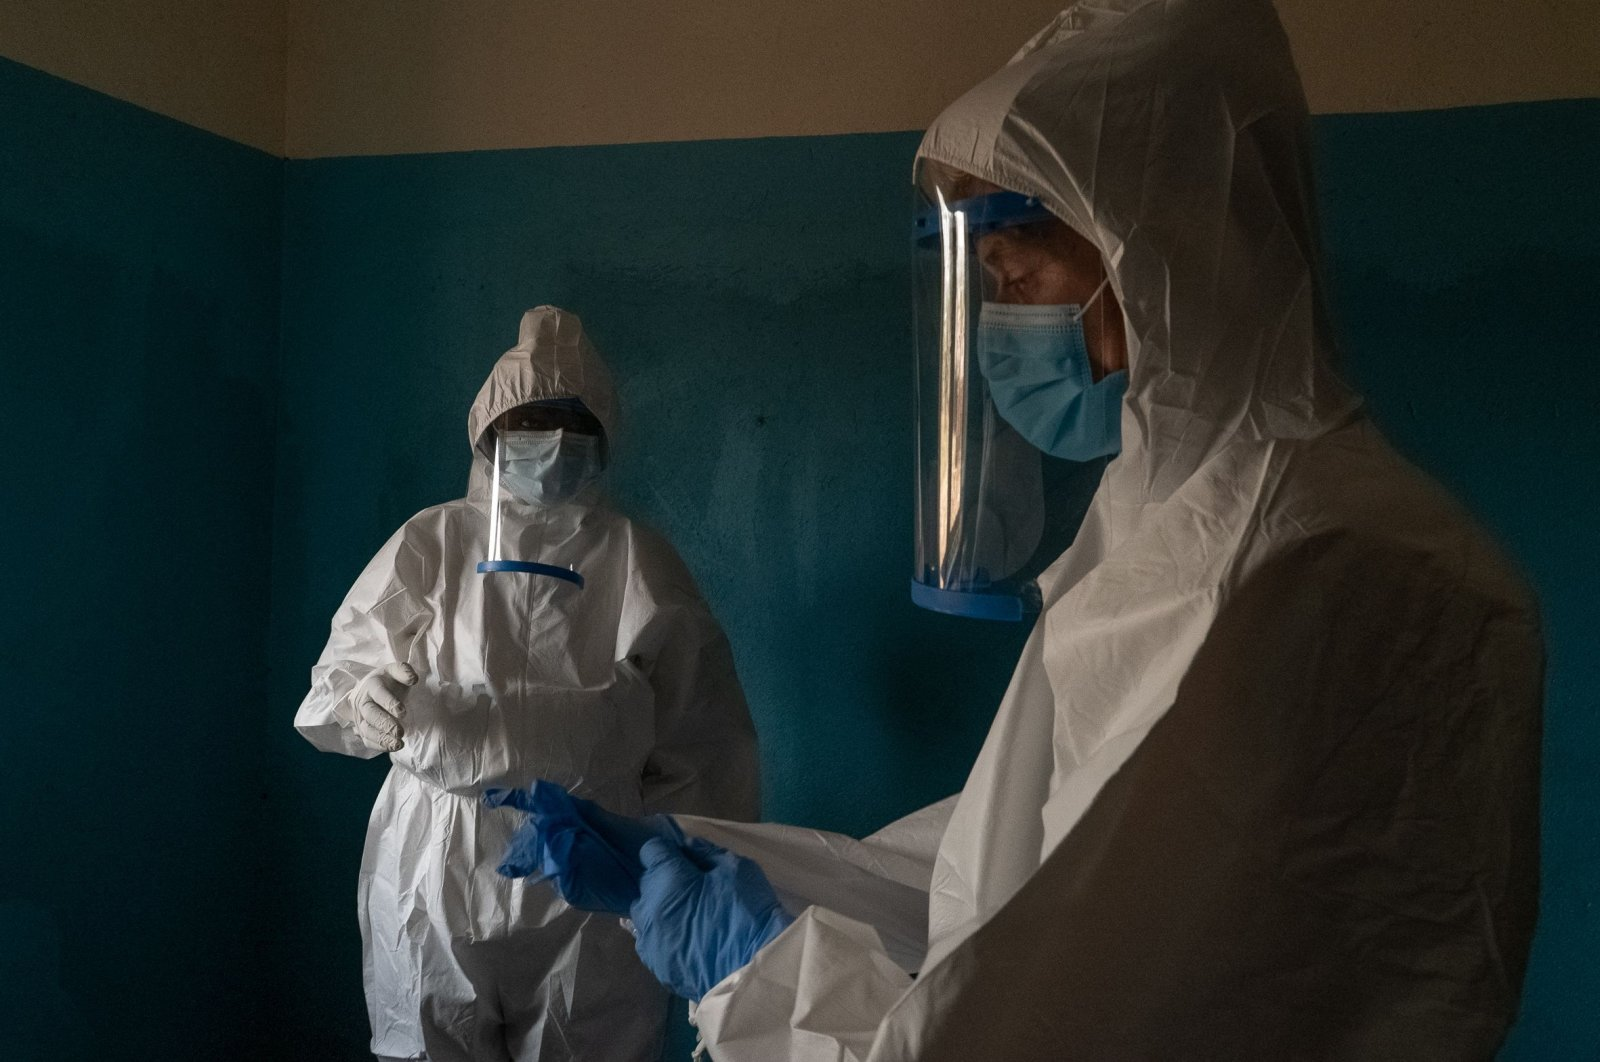 A multidisciplinary team mandated by the Provincial Health Division put on personal protective equipment (PPE) in Ituri, Democratic Republic of Congo on Feb. 26, 2021. (AFP Photo)